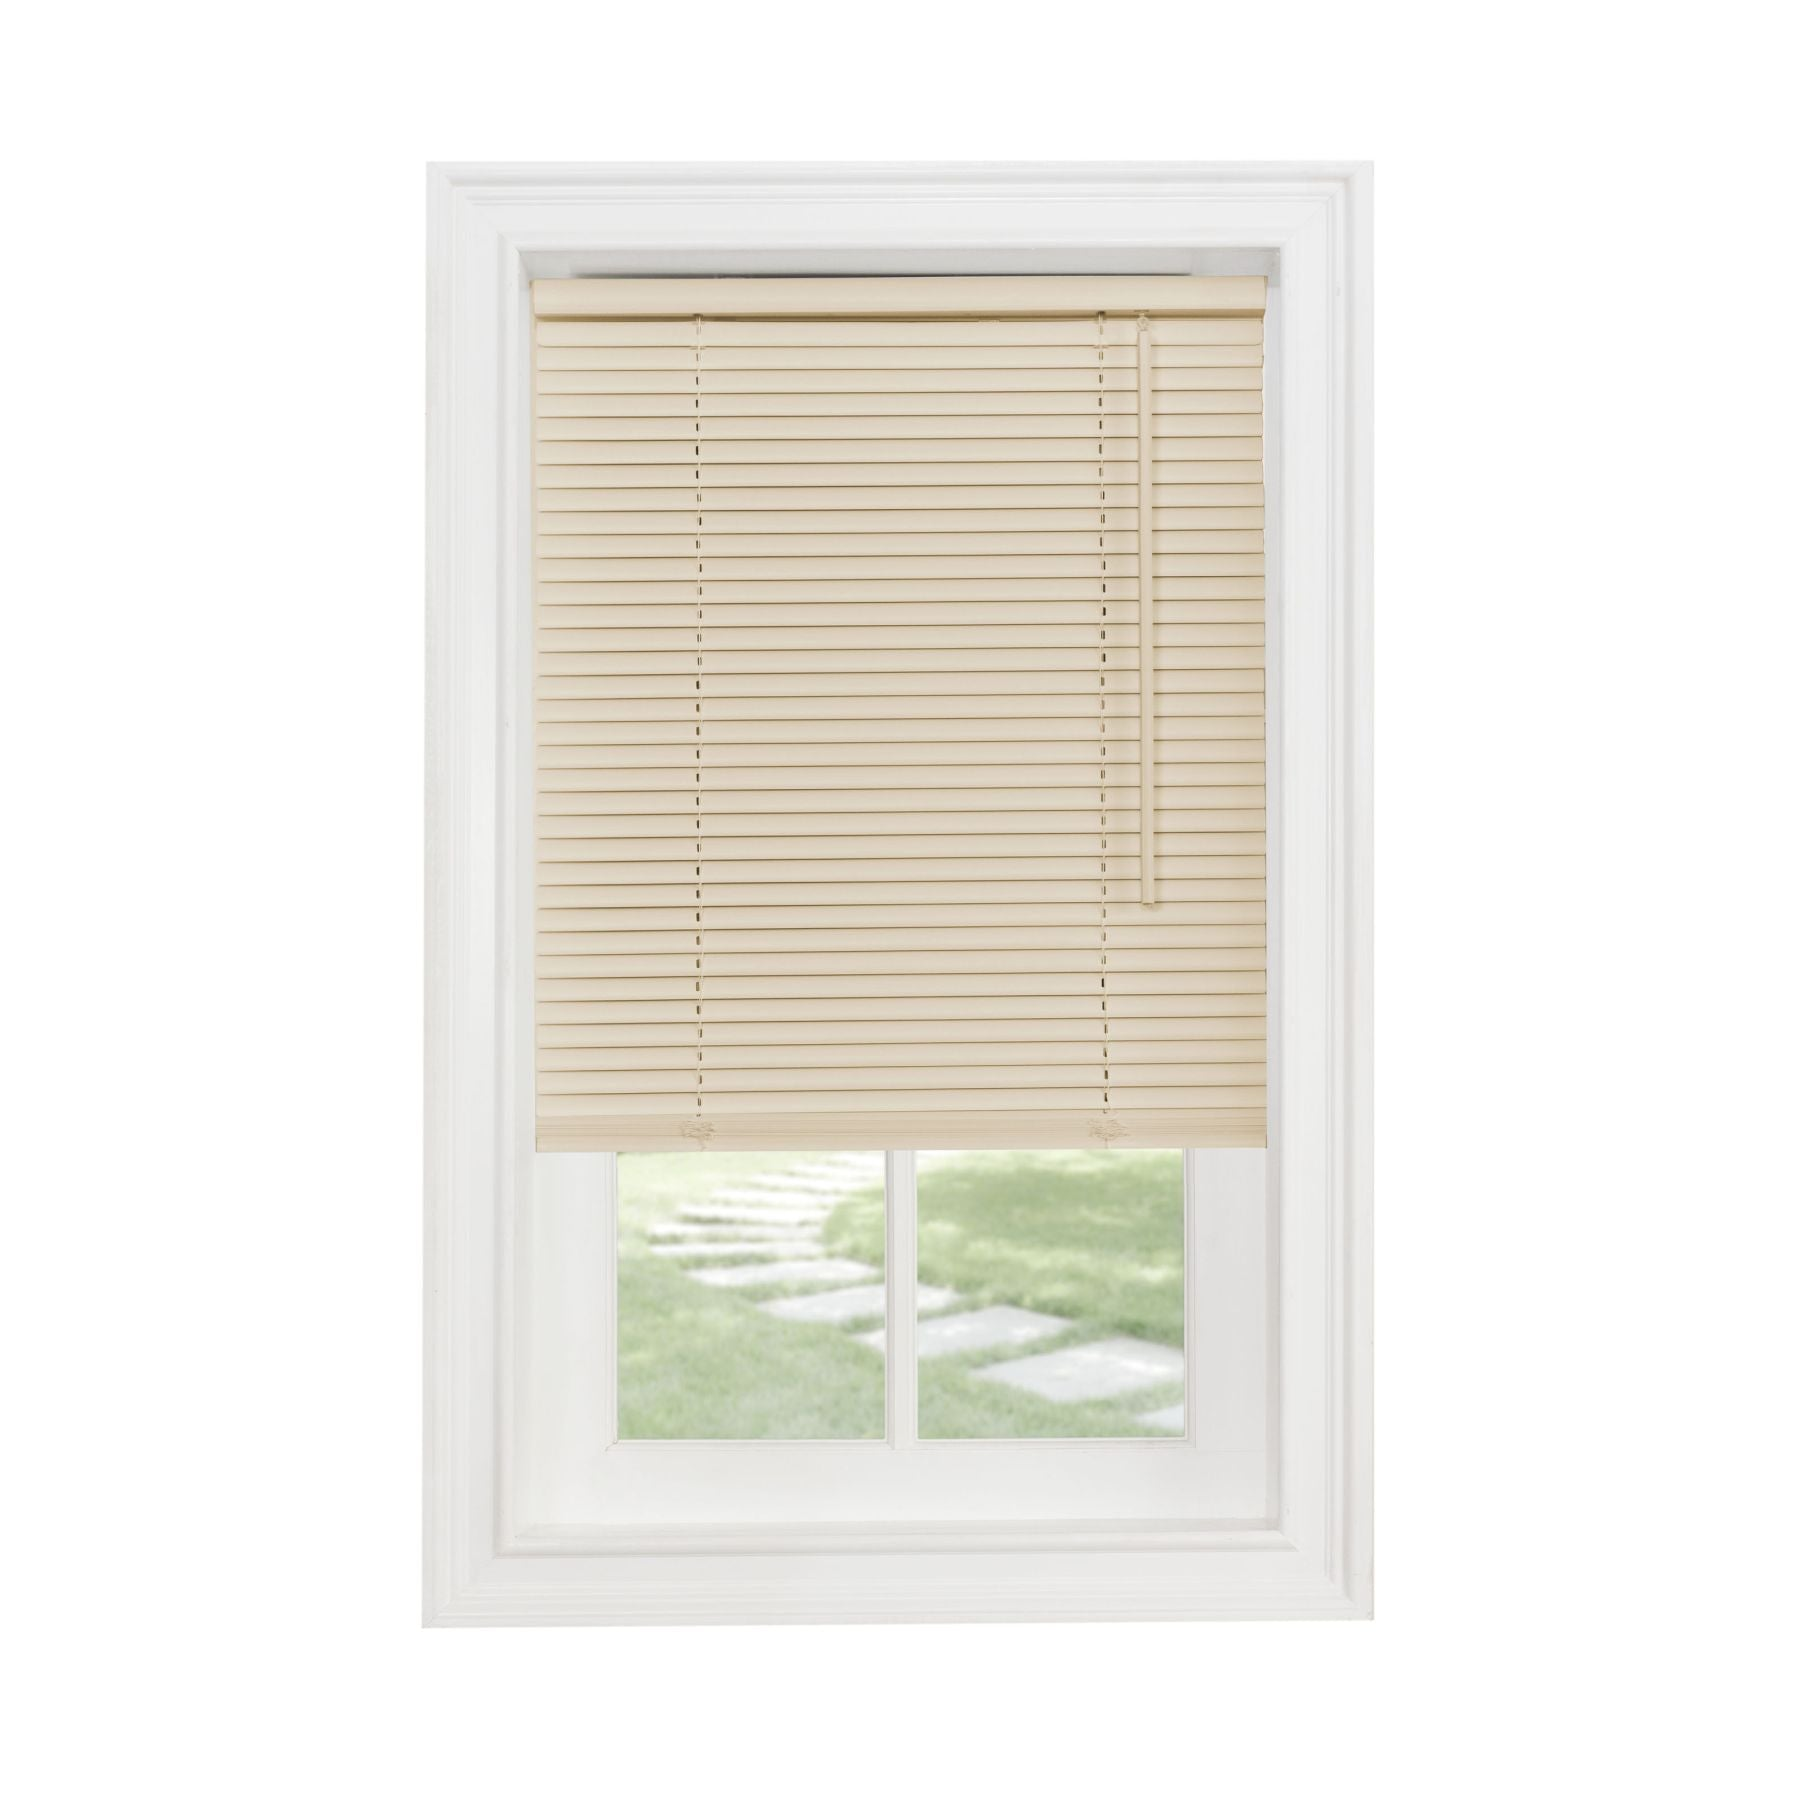 "Traditional Elegance Cordless Sunrise 1"" Light Filtering Mini Blind 35x64 - Alabaster"